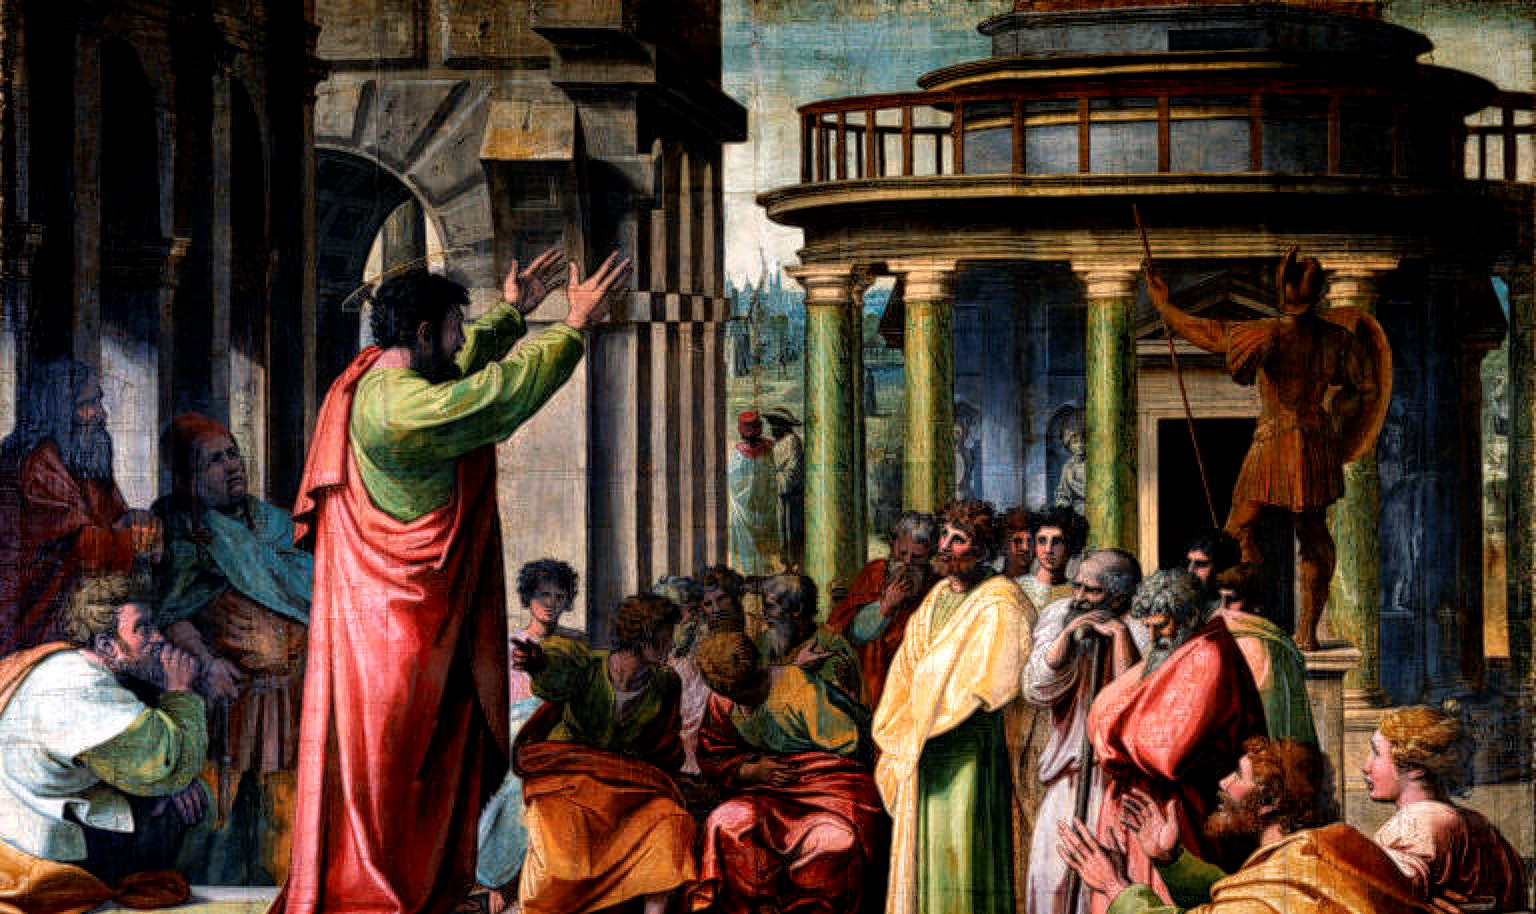 V&A_-_Raphael,_St_Paul_Preaching_in_Athens_(1515)-1